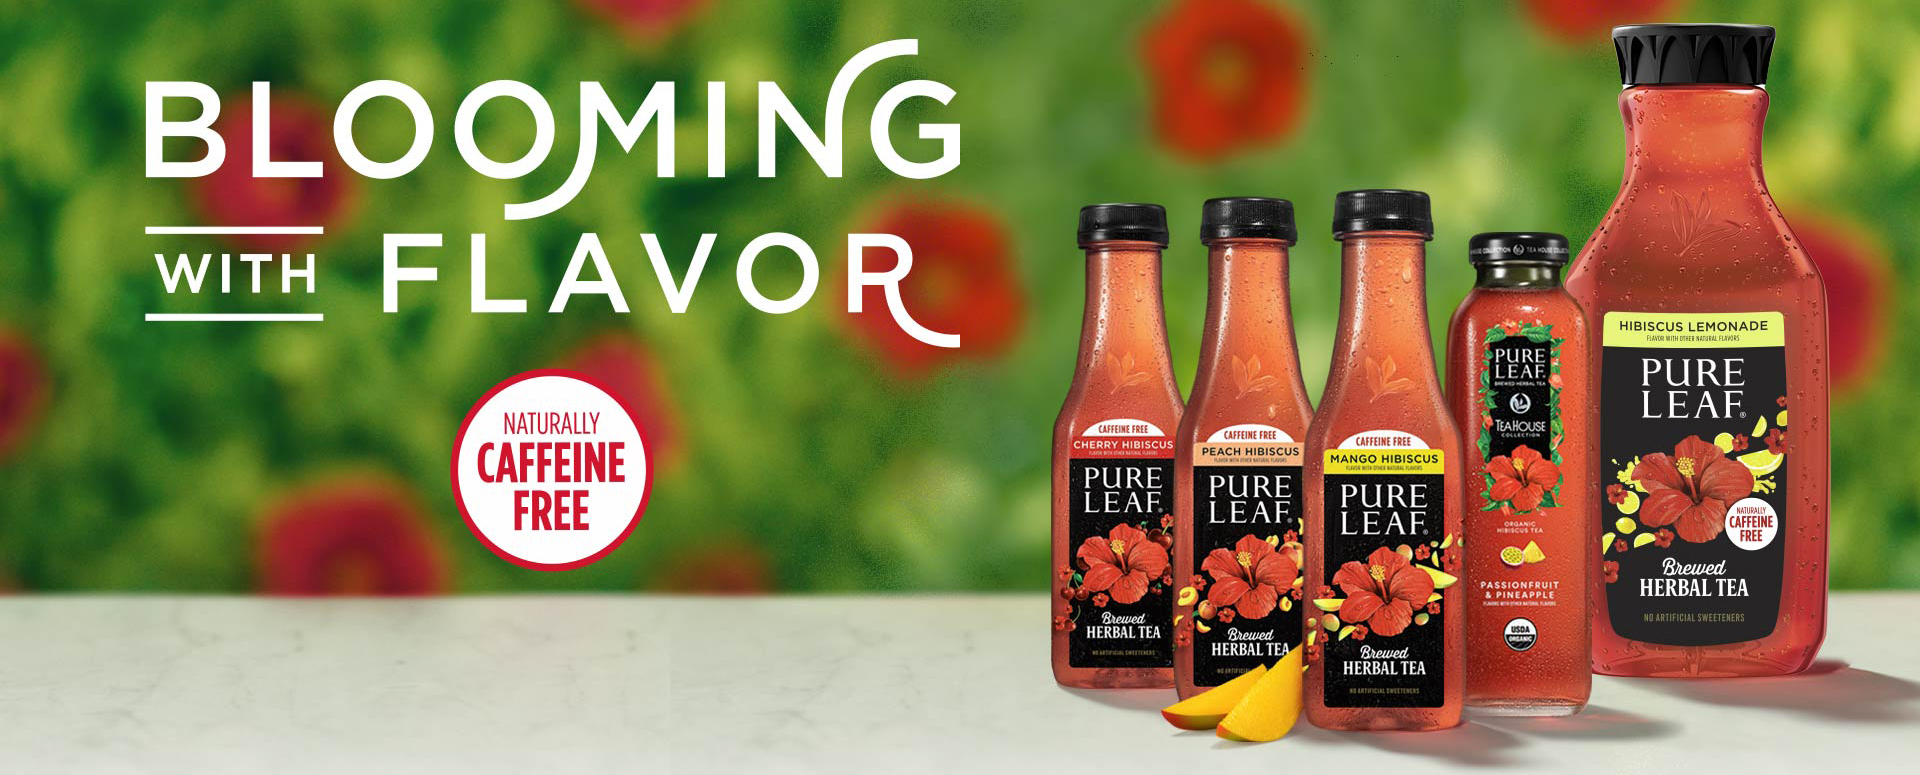 No Shadow Here Spring Arrives Early as Pure Leaf Releases New Herbal Iced Teas